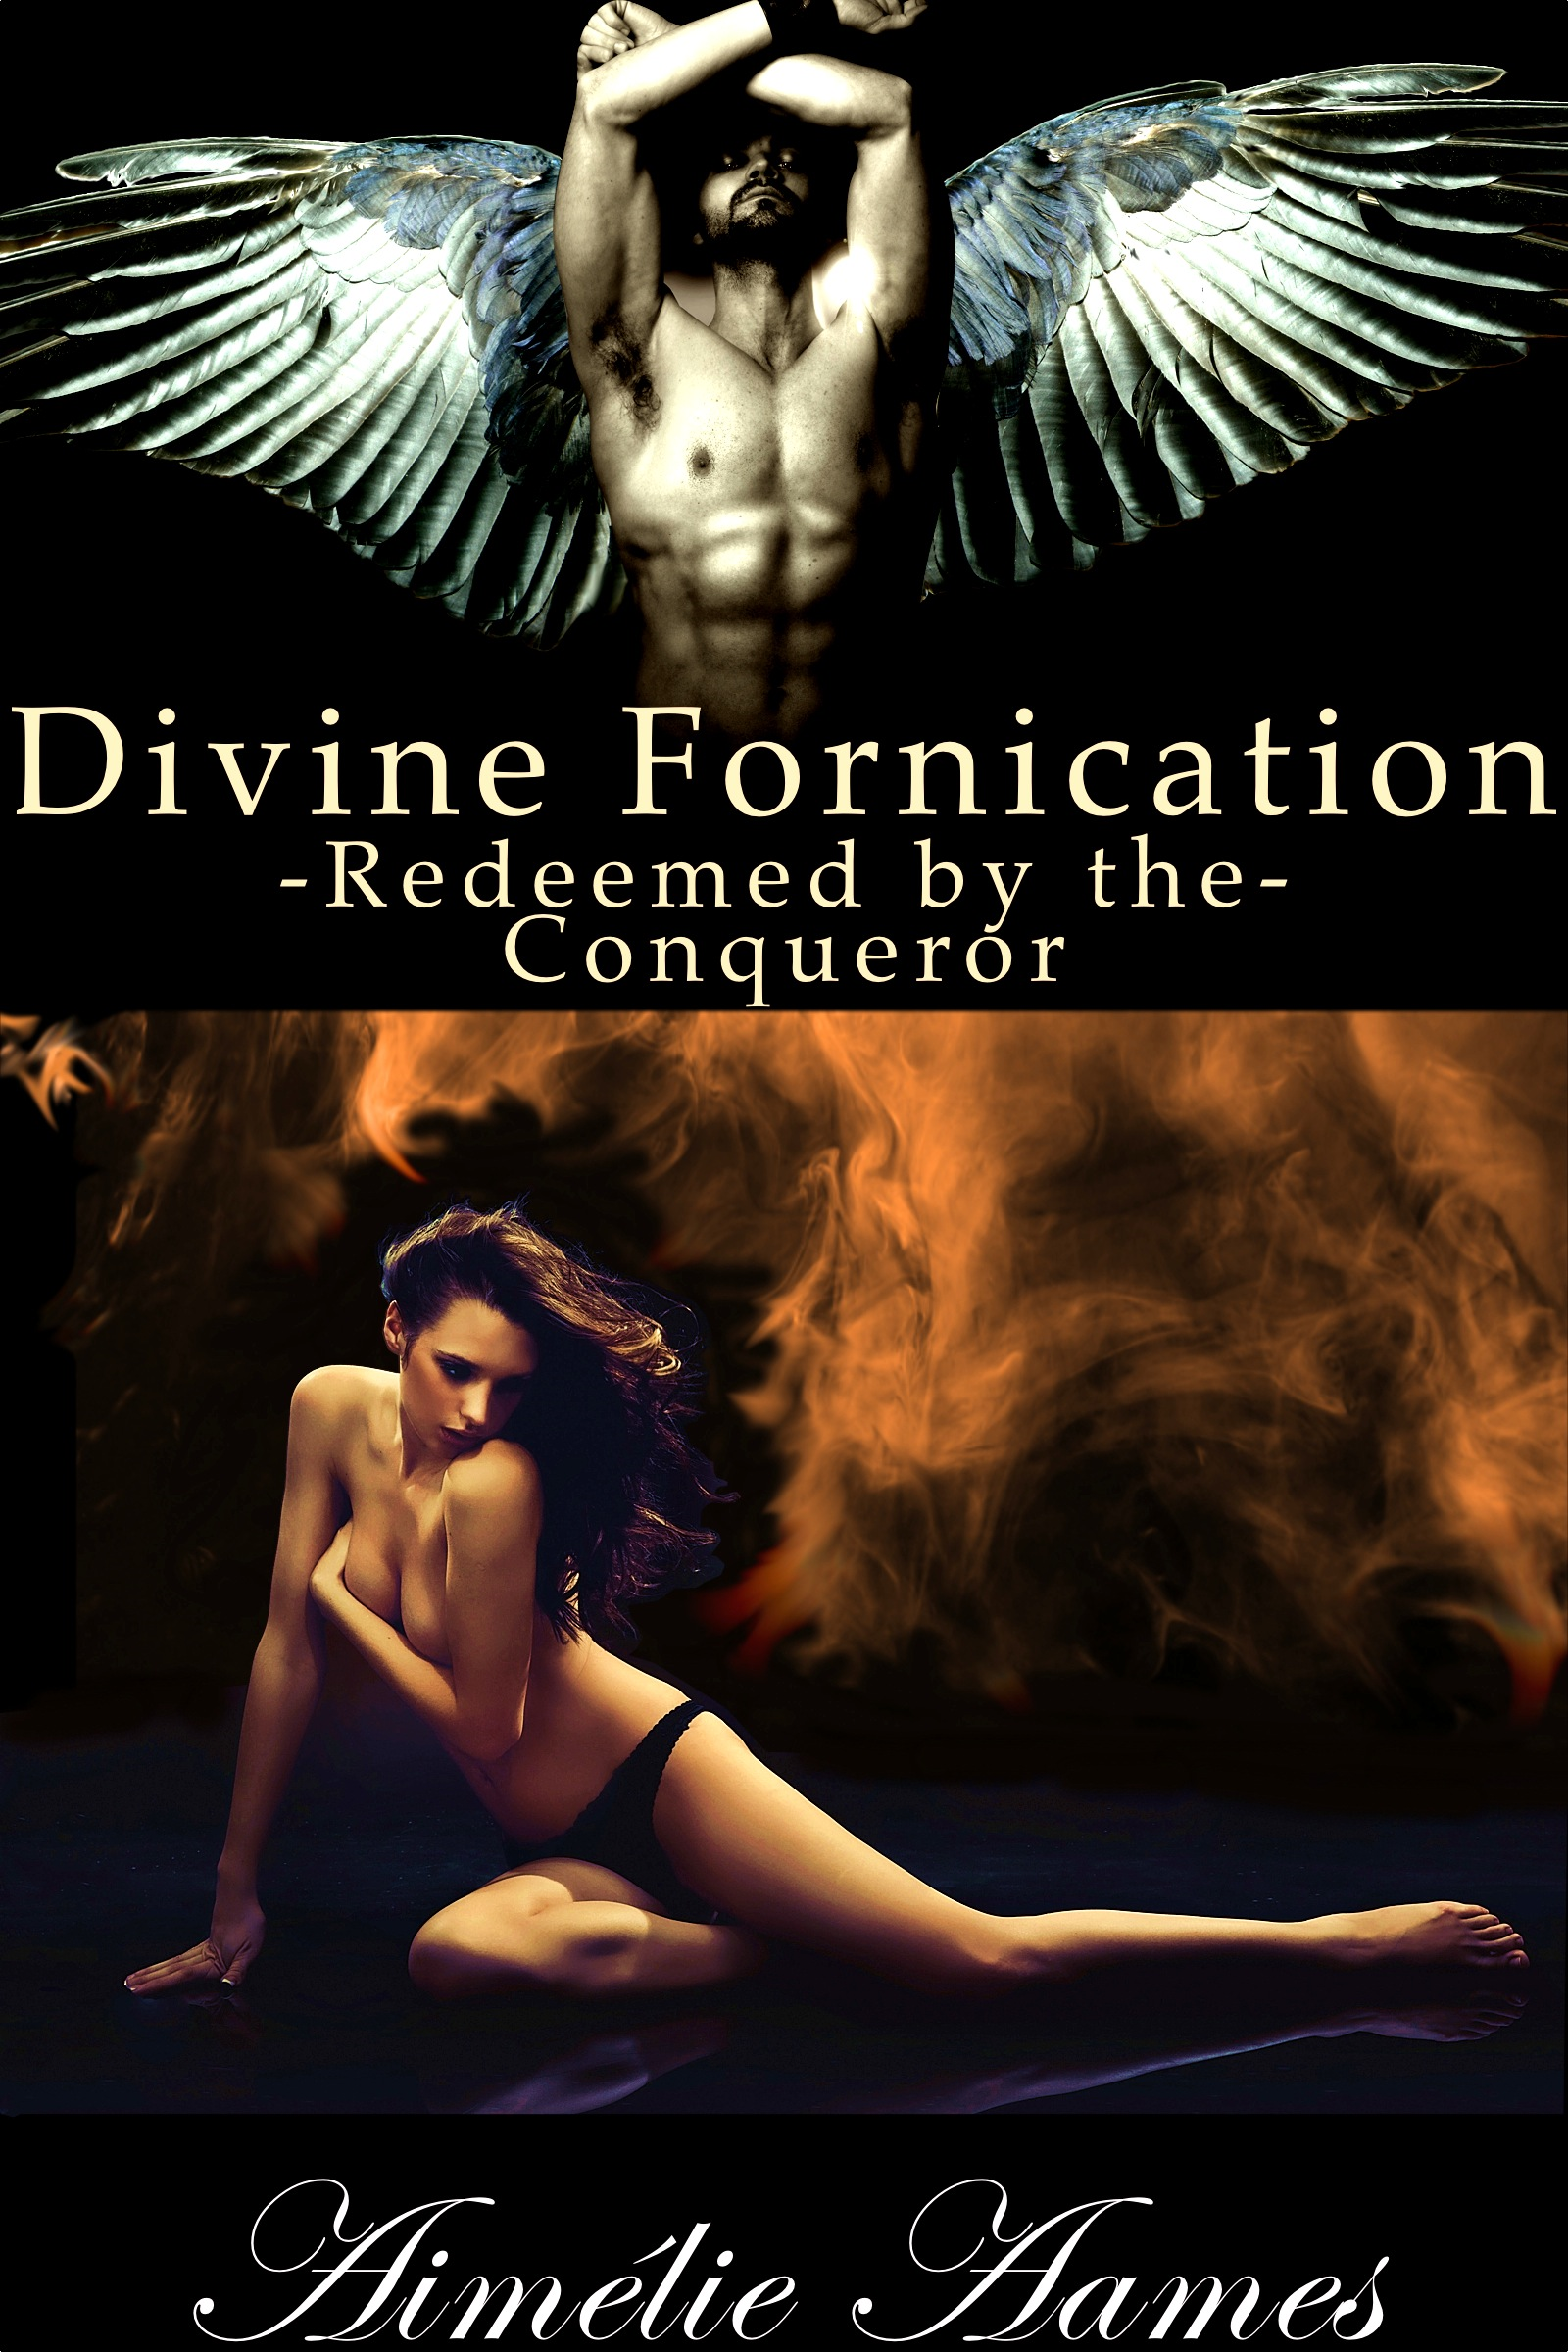 Redeemed by the Conqueror (Divine Fornication IV-An Erotic Story of Angels, Vampires and Werewolves)